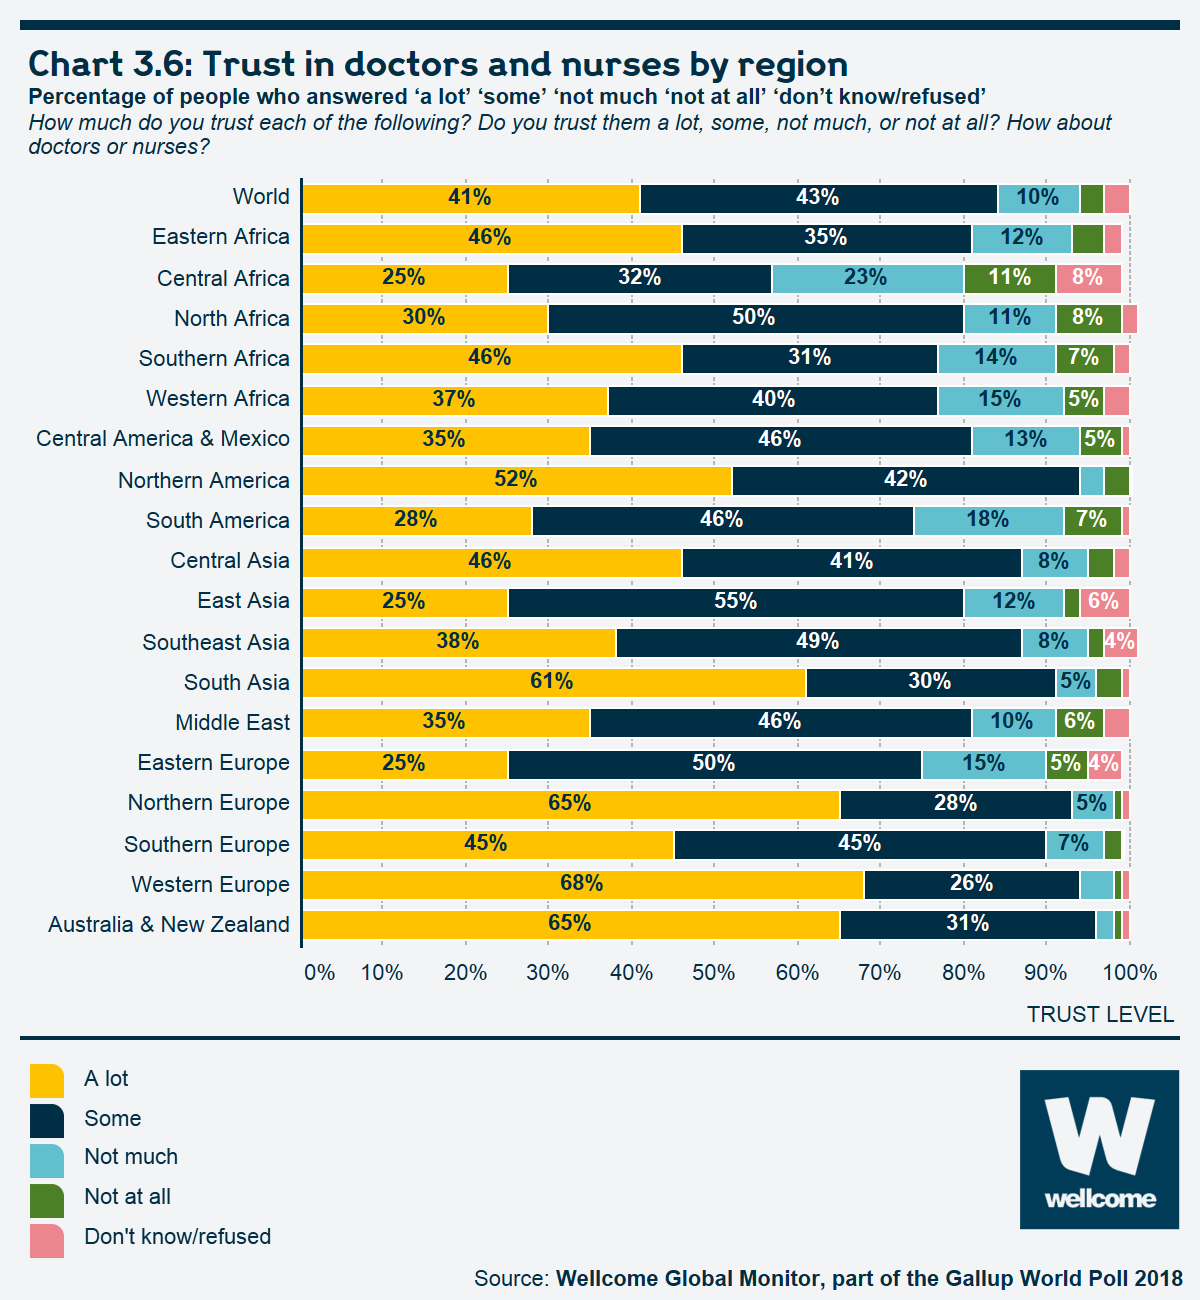 Chart 3.6 Trust in doctors and nurses by region